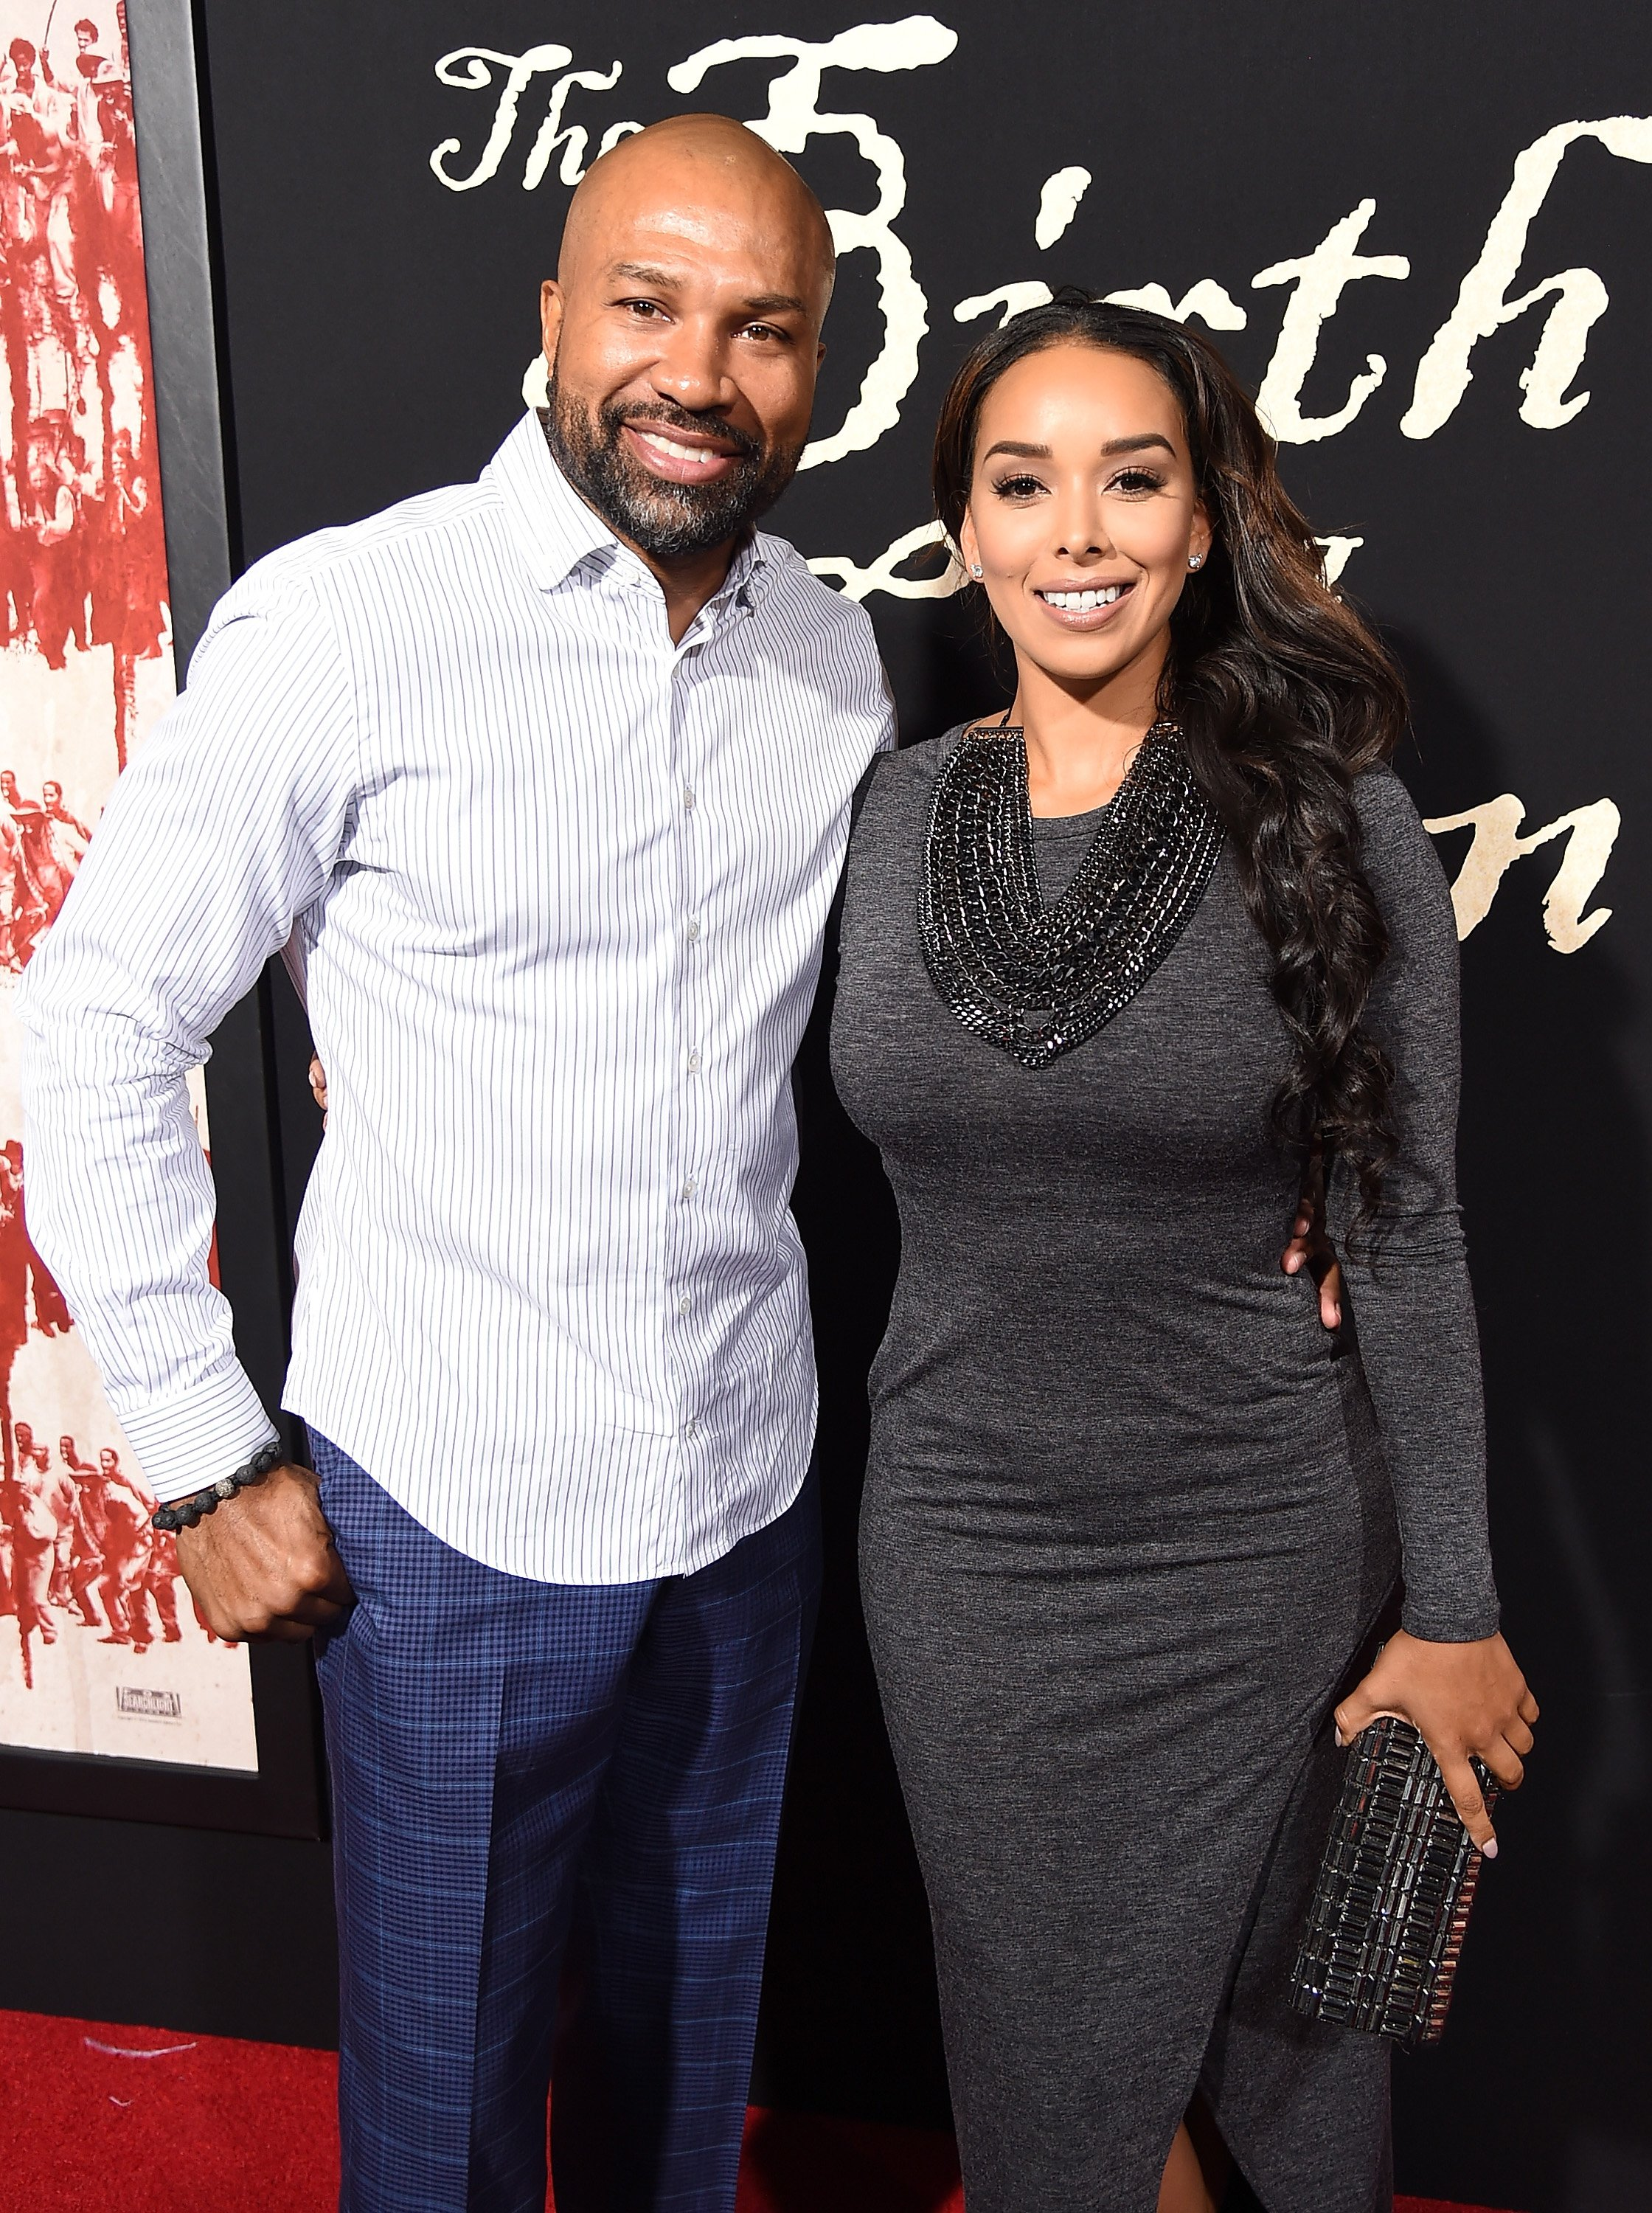 """Derek Fisher and Gloria Govan attend the premiere of """"The Birth of a Nation"""" on September 21, 2016 in Hollywood, California. 